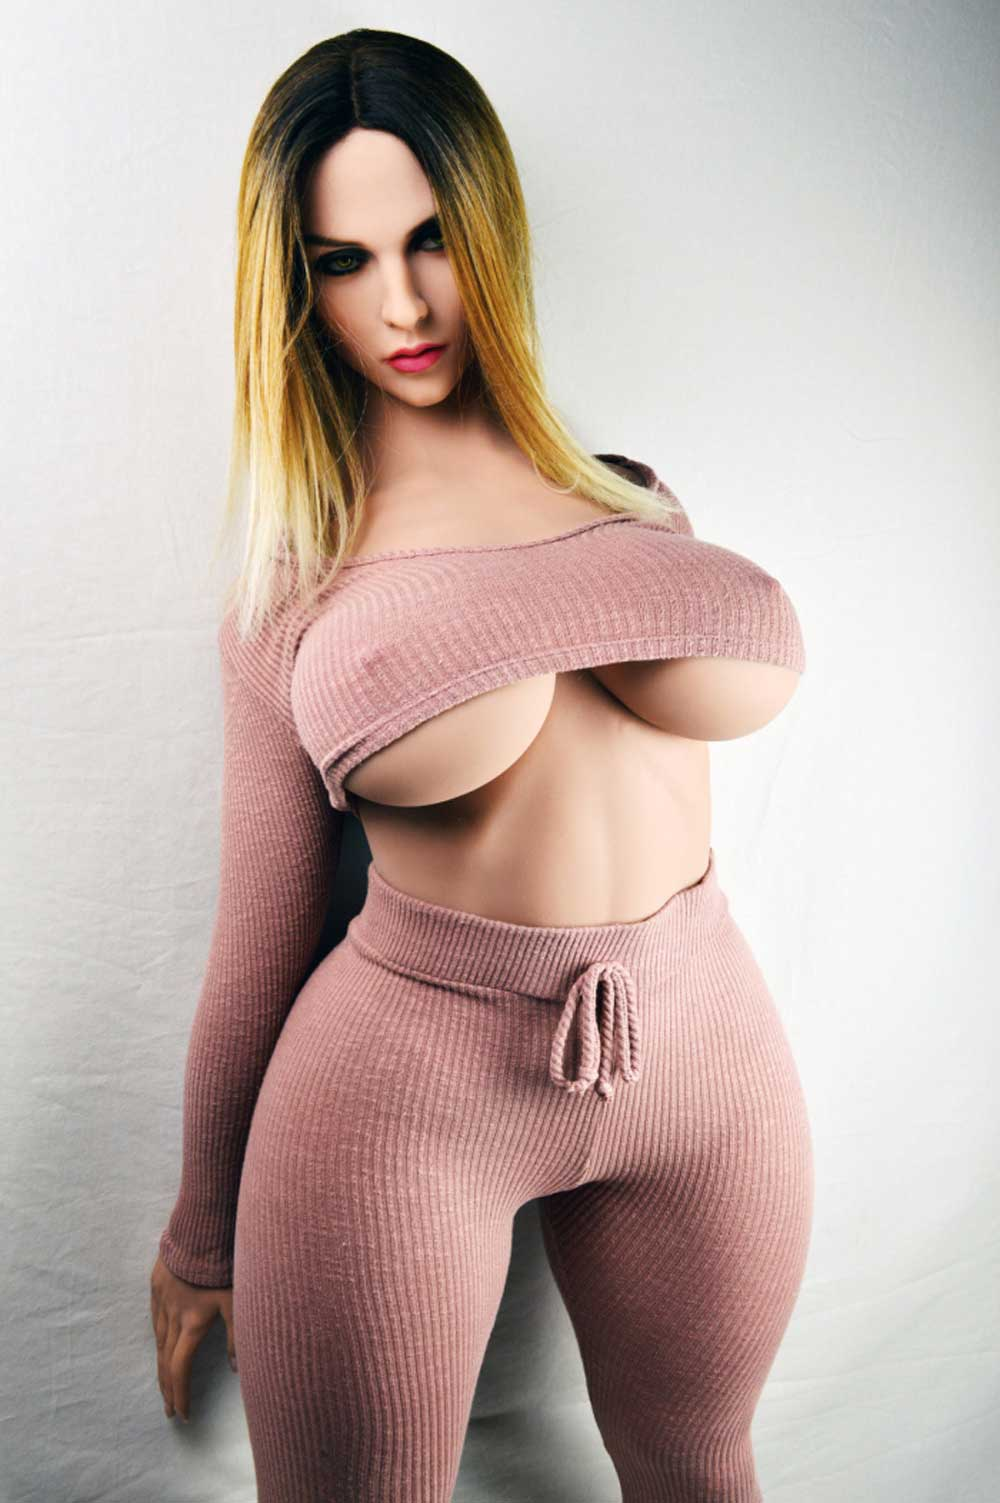 Big breasted big ass sex doll with hands behind back